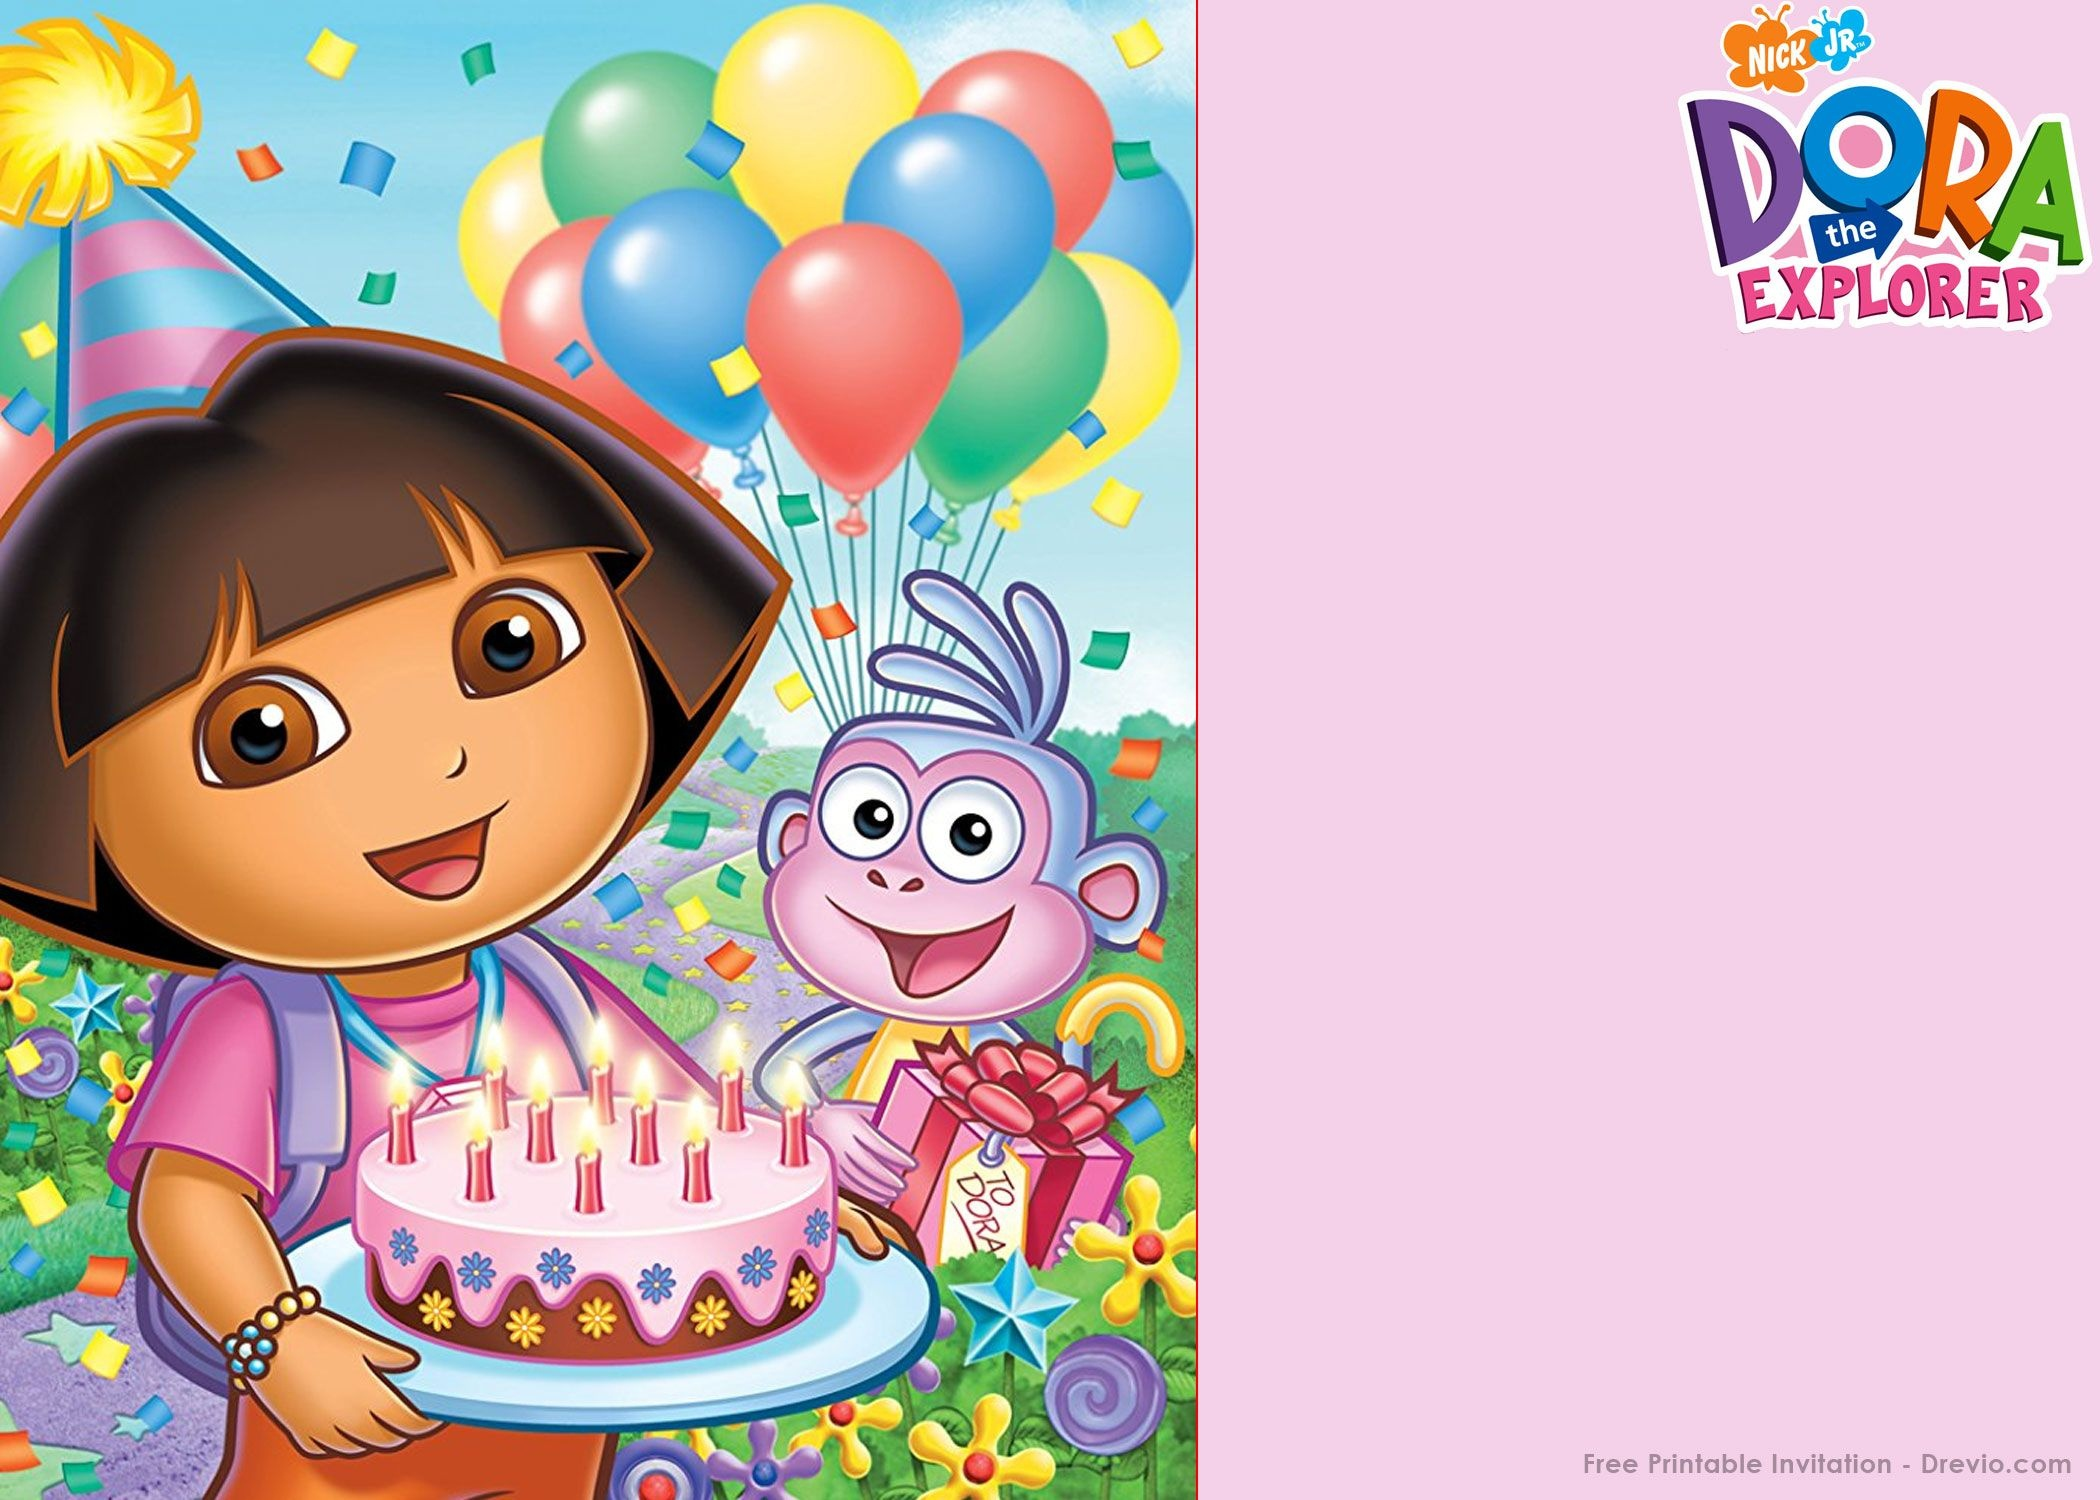 Free Printable Dora The Explorer Party Invitation | Birthday - Dora Birthday Cards Free Printable